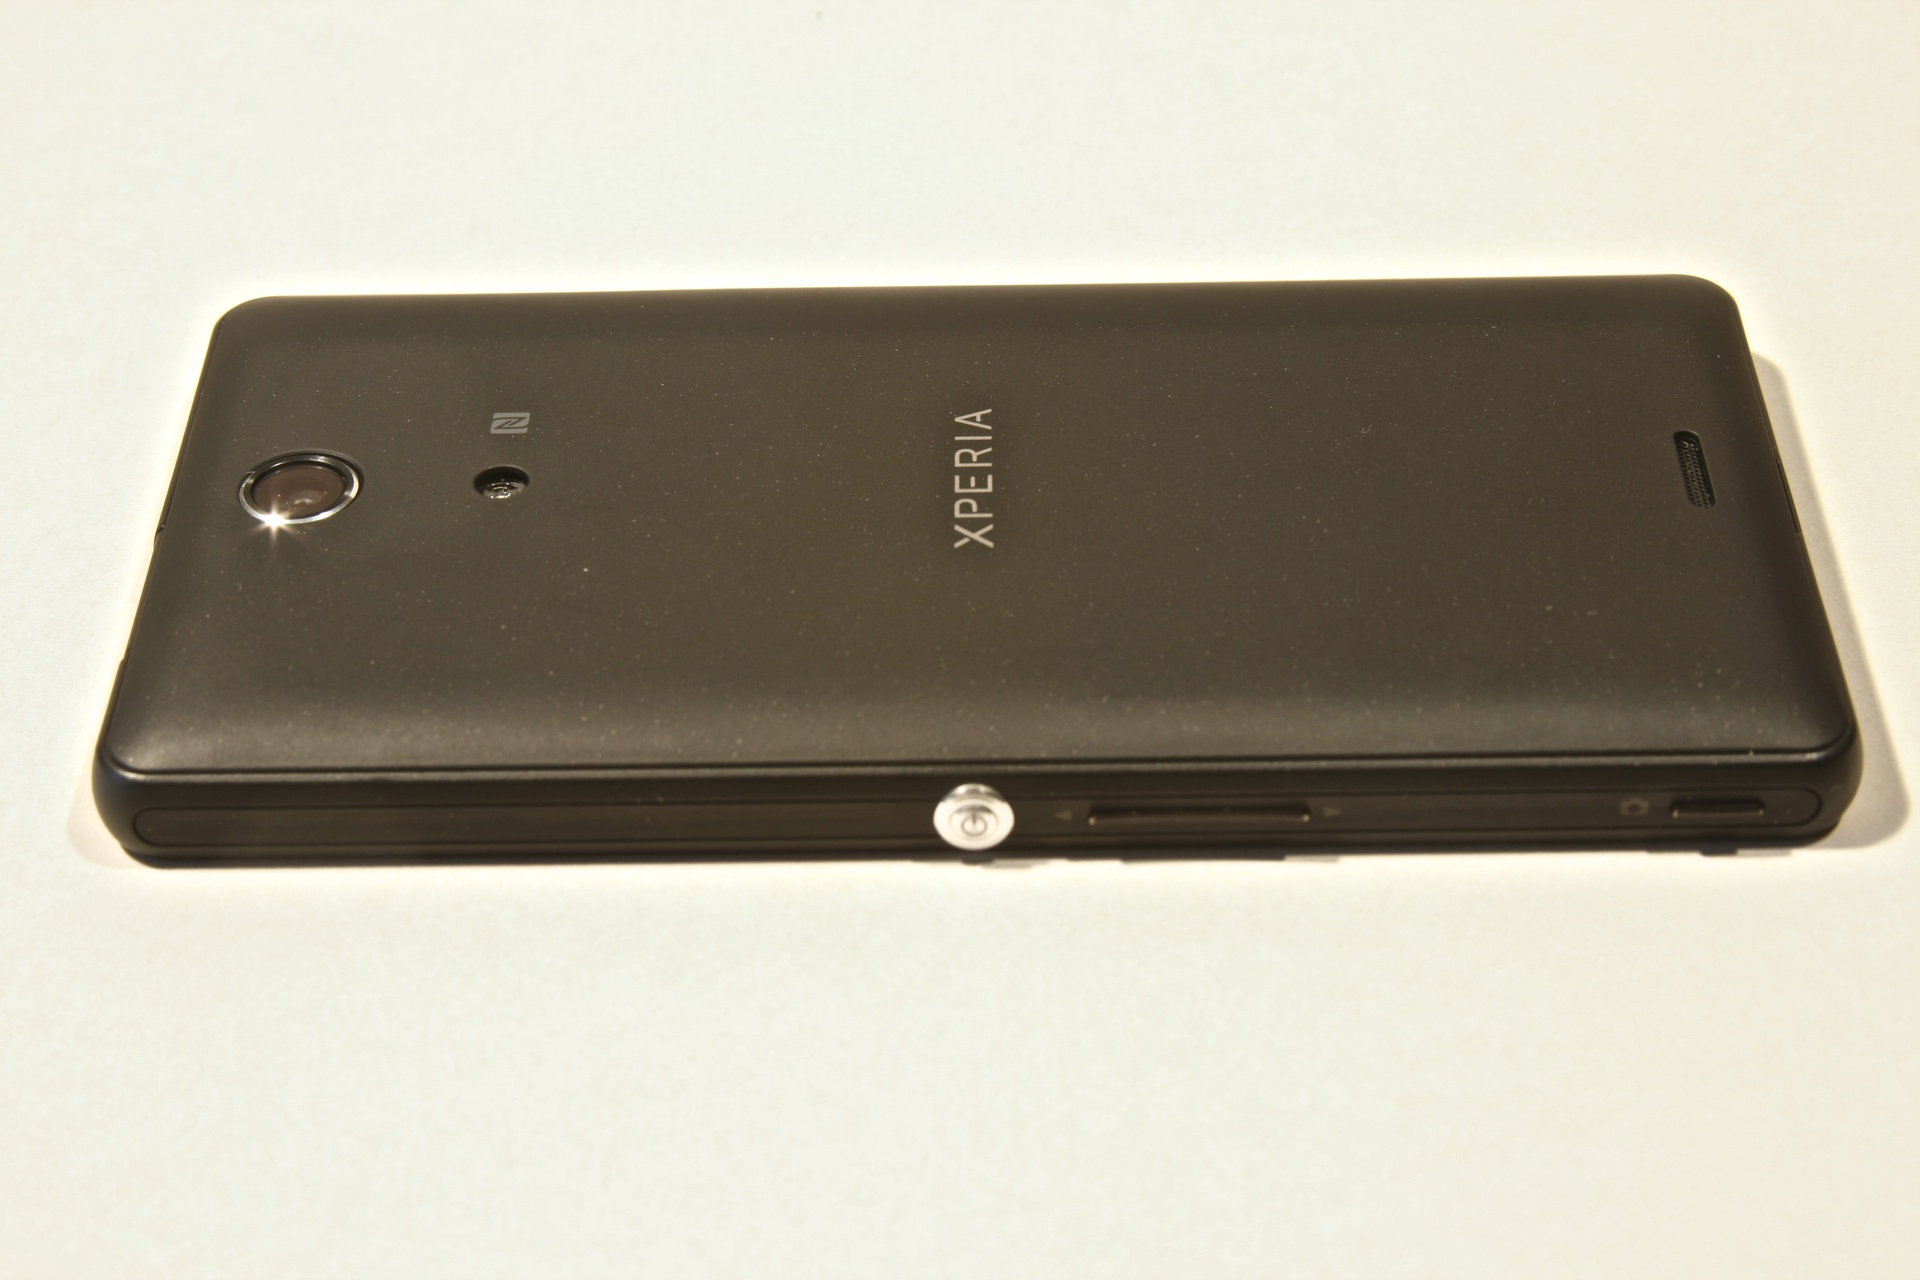 Tough Guy — the Review of the protect Sony Xperia ZR smart phone